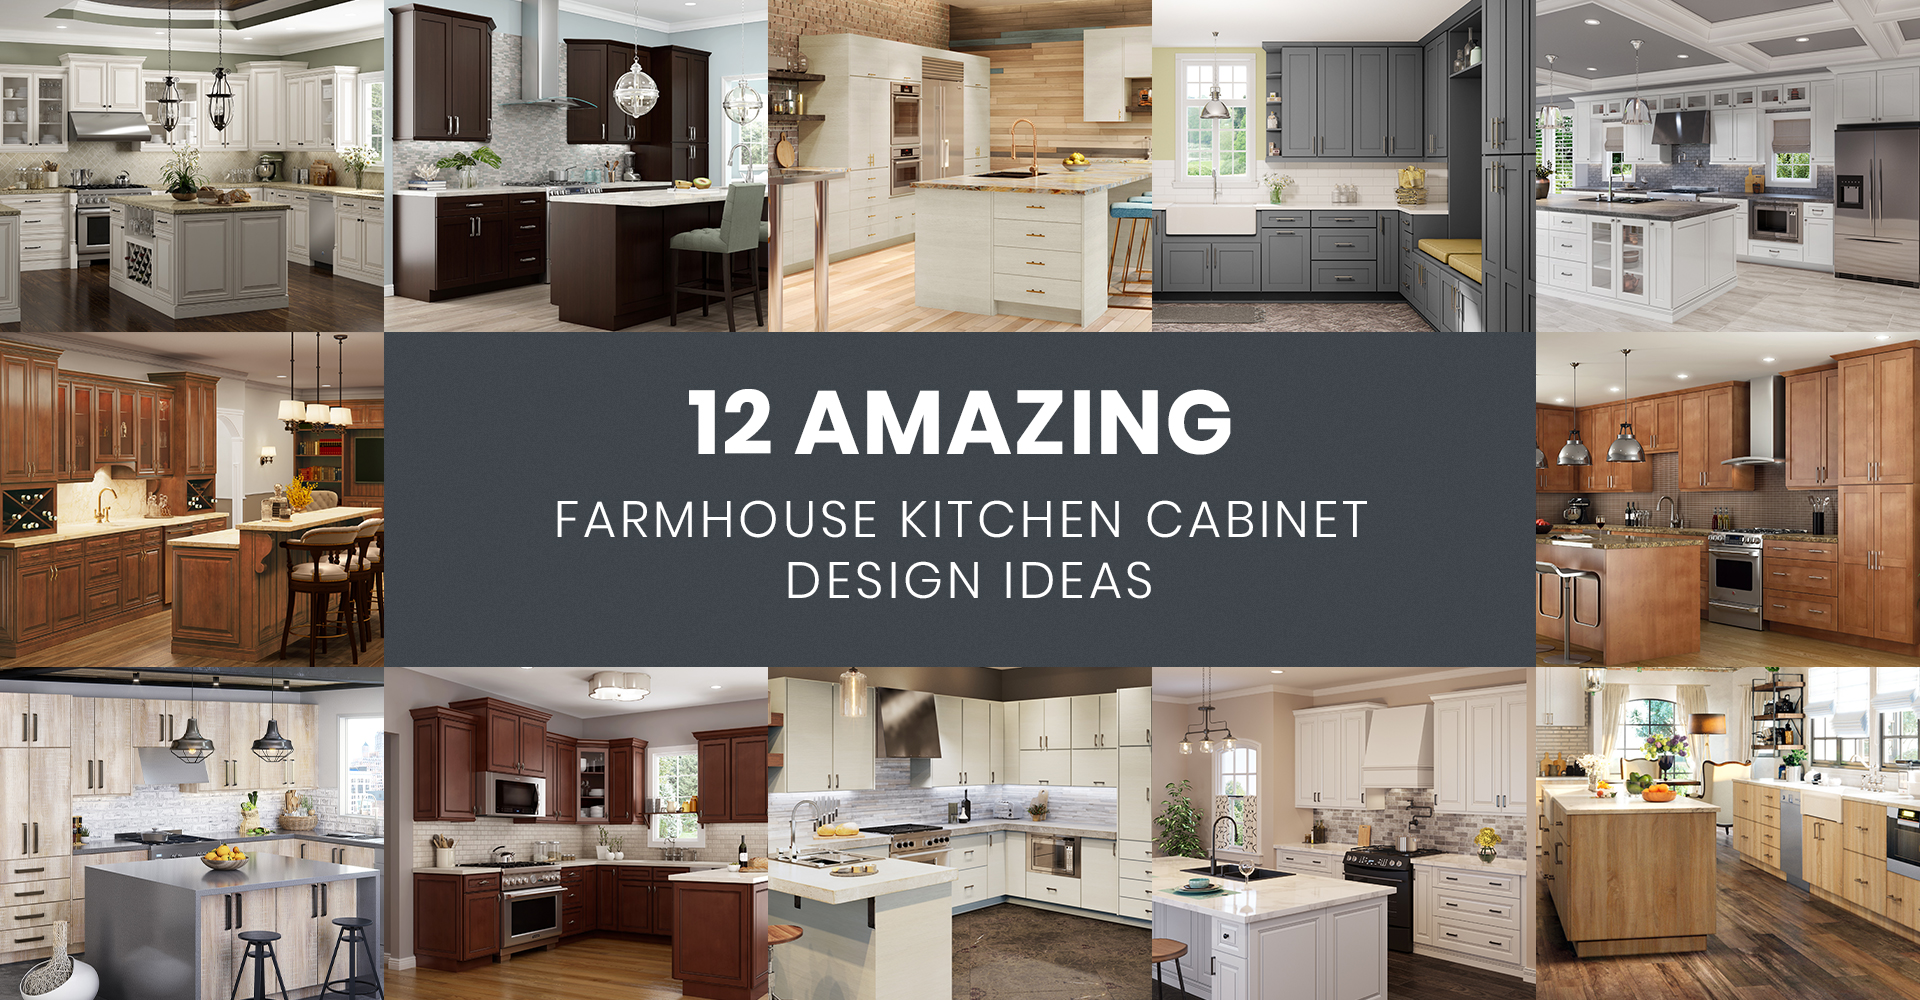 Amazing Farmhouse Kitchen Cabinet Design Ideas